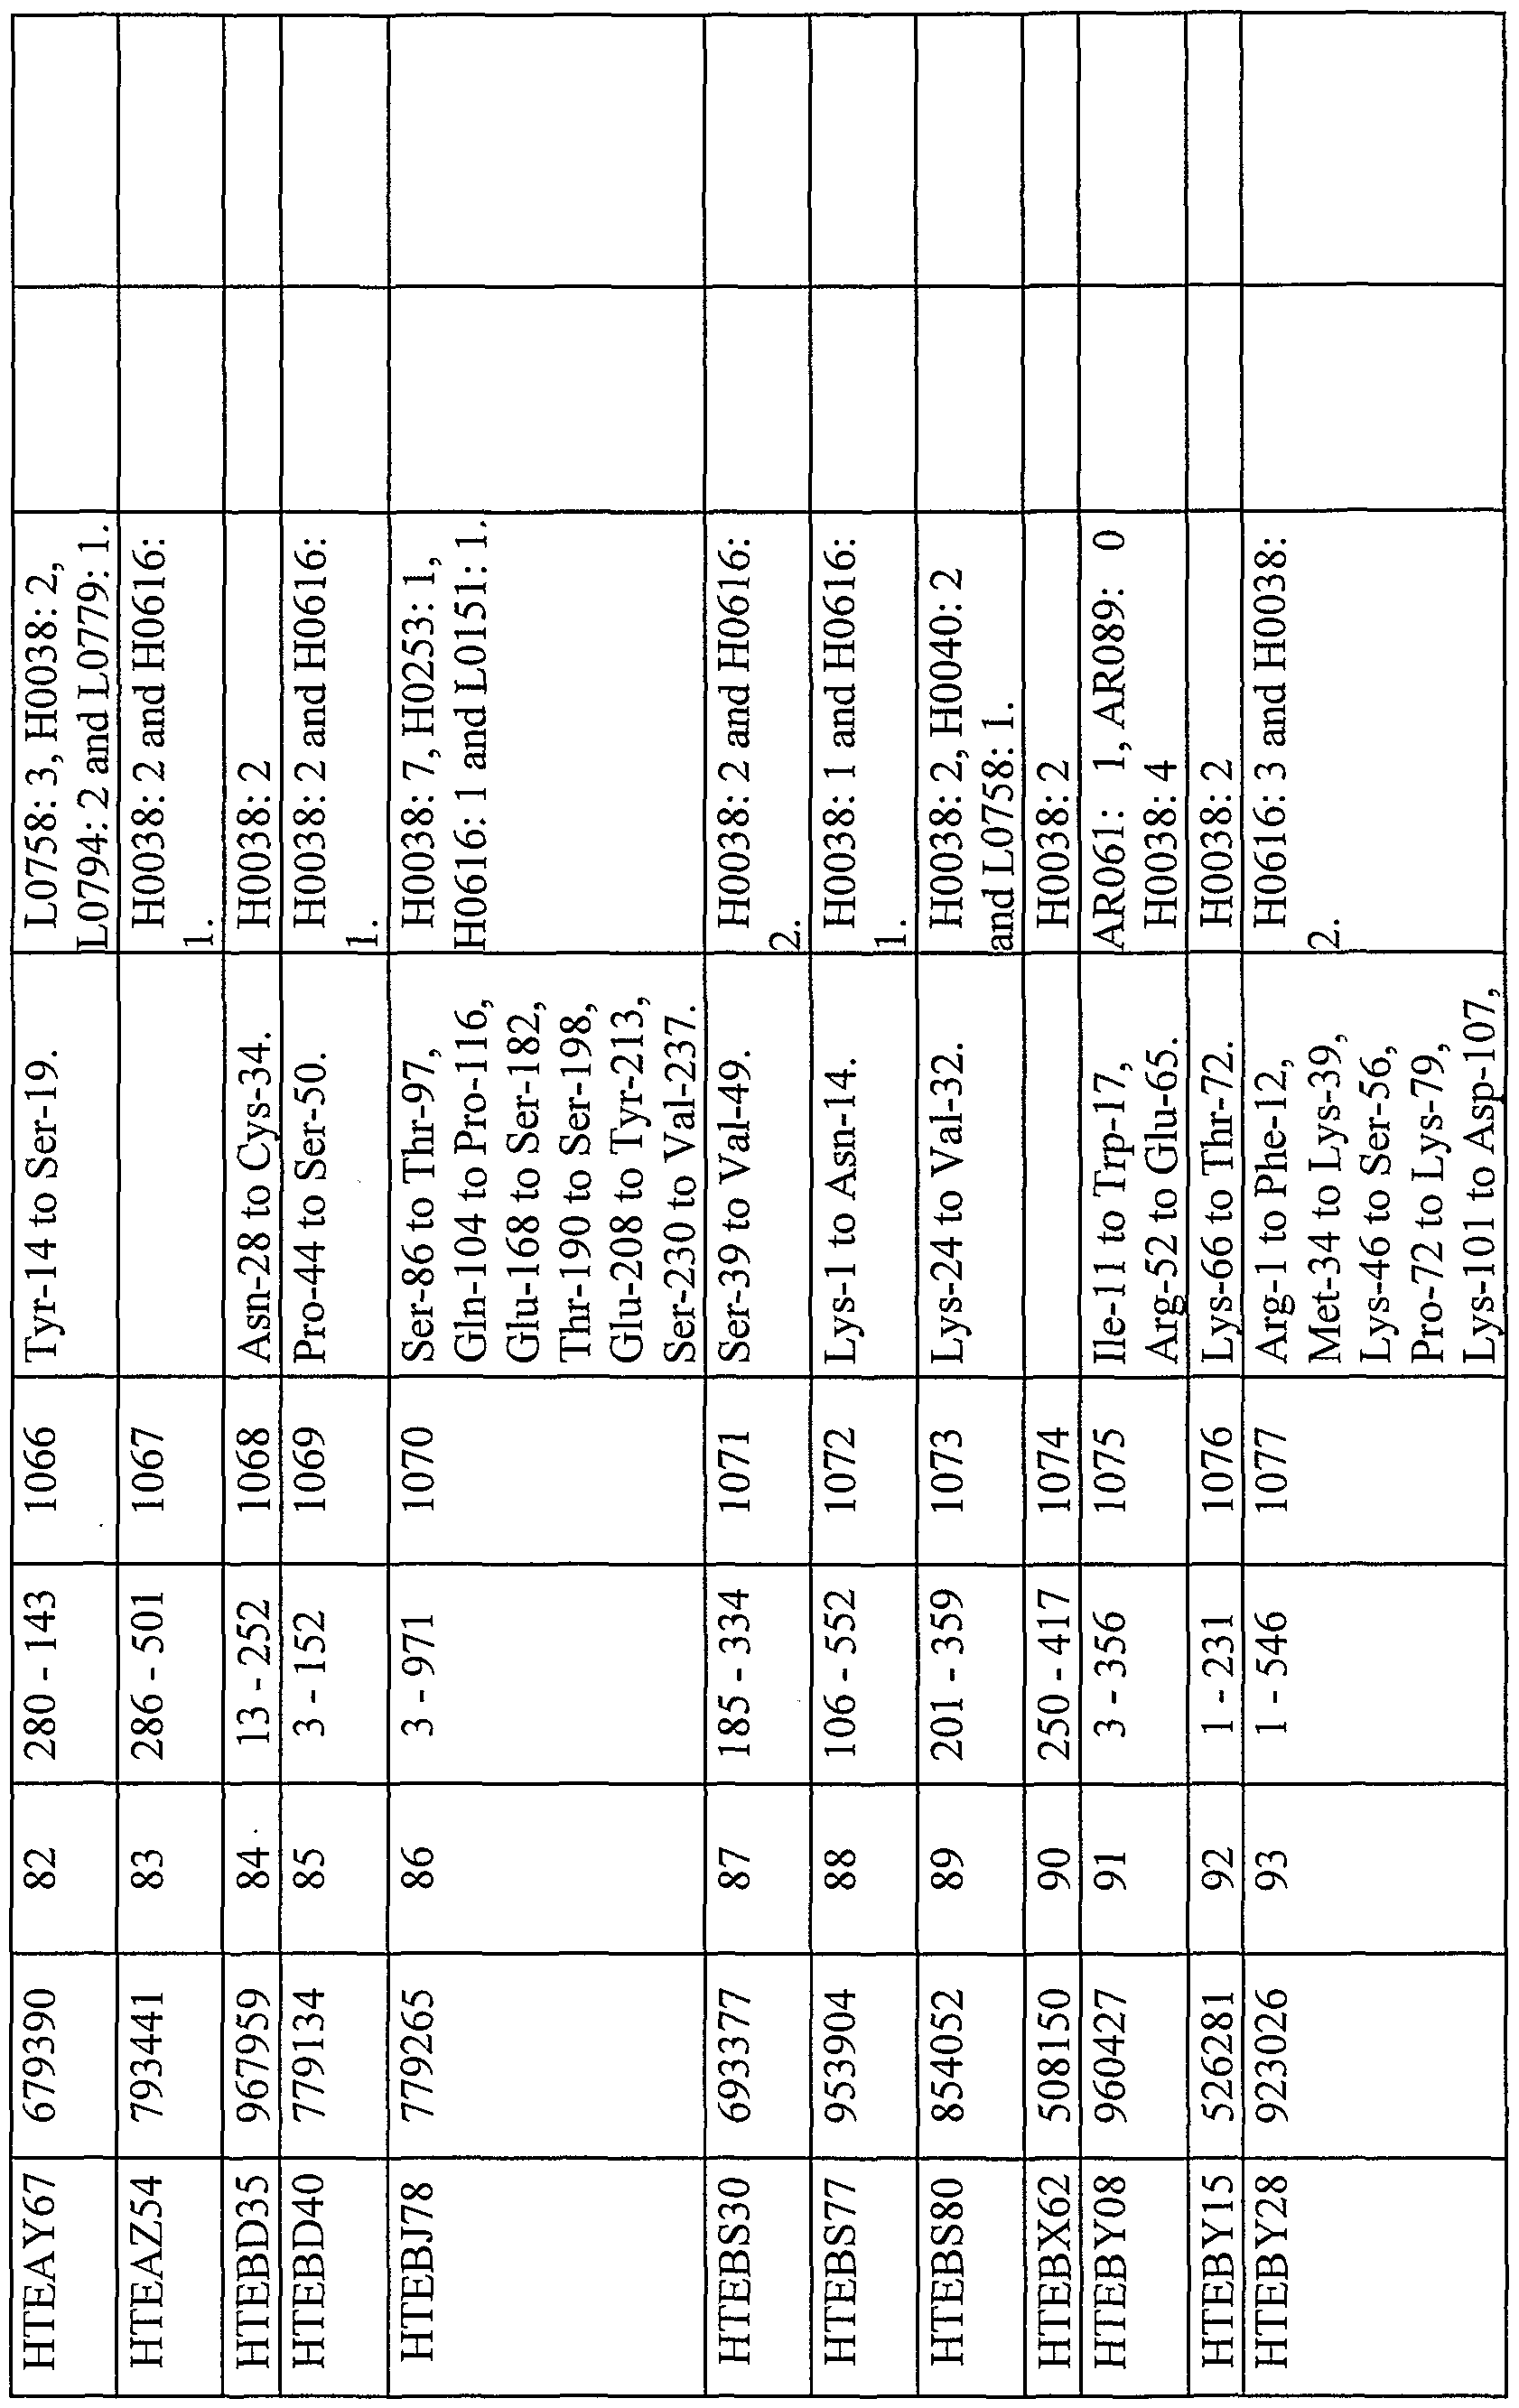 Wo2001055317a2 Nucleic Acids Proteins And Antibodies Google